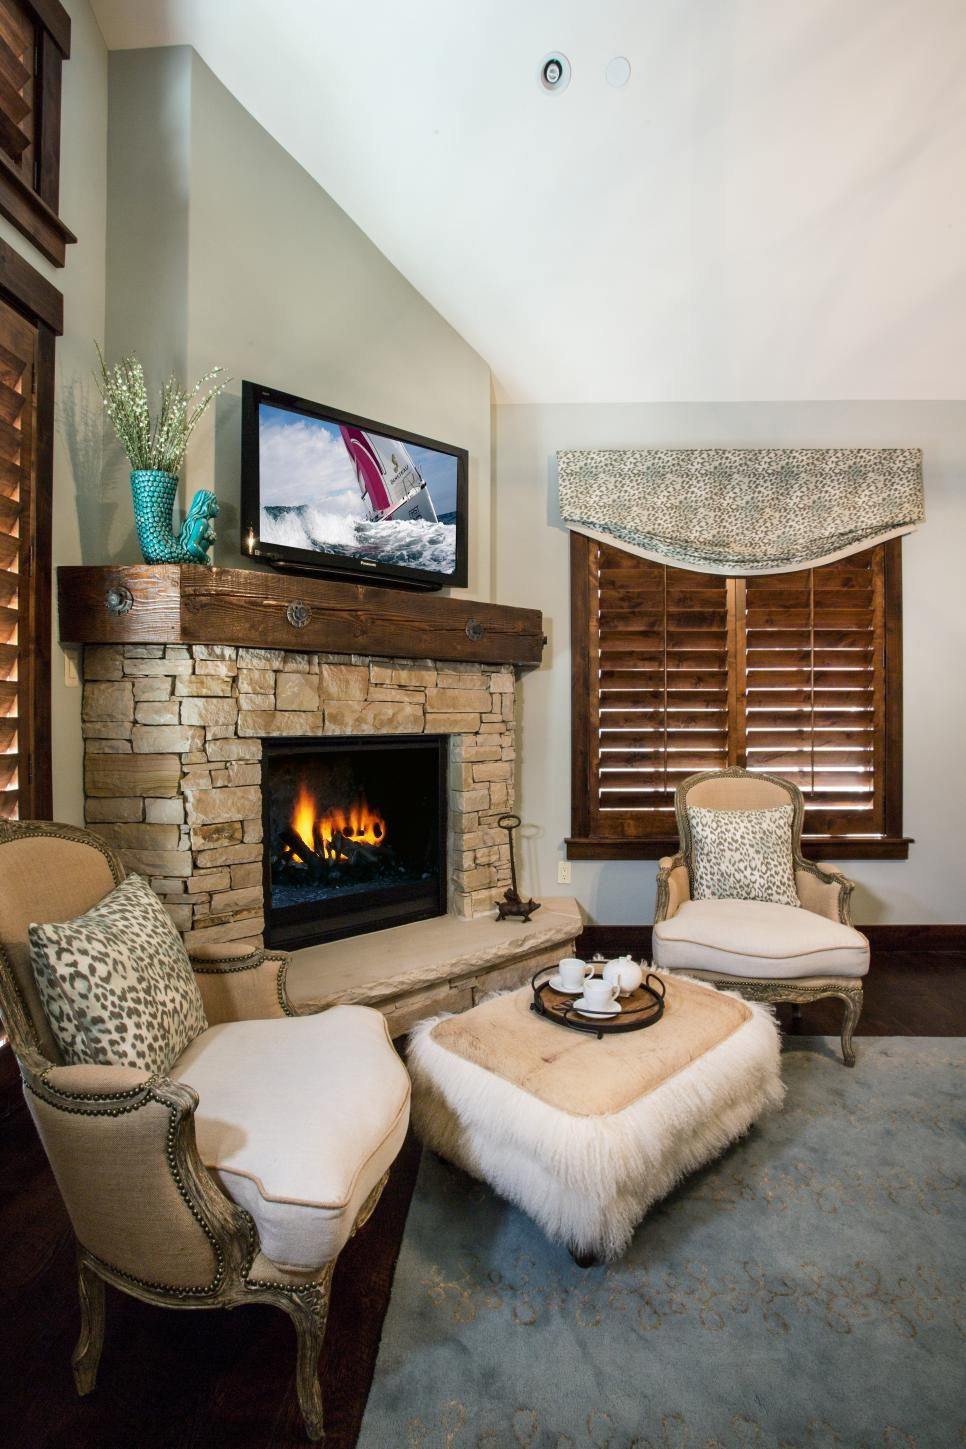 This cozy master bedroom features a stone fireplace which designer